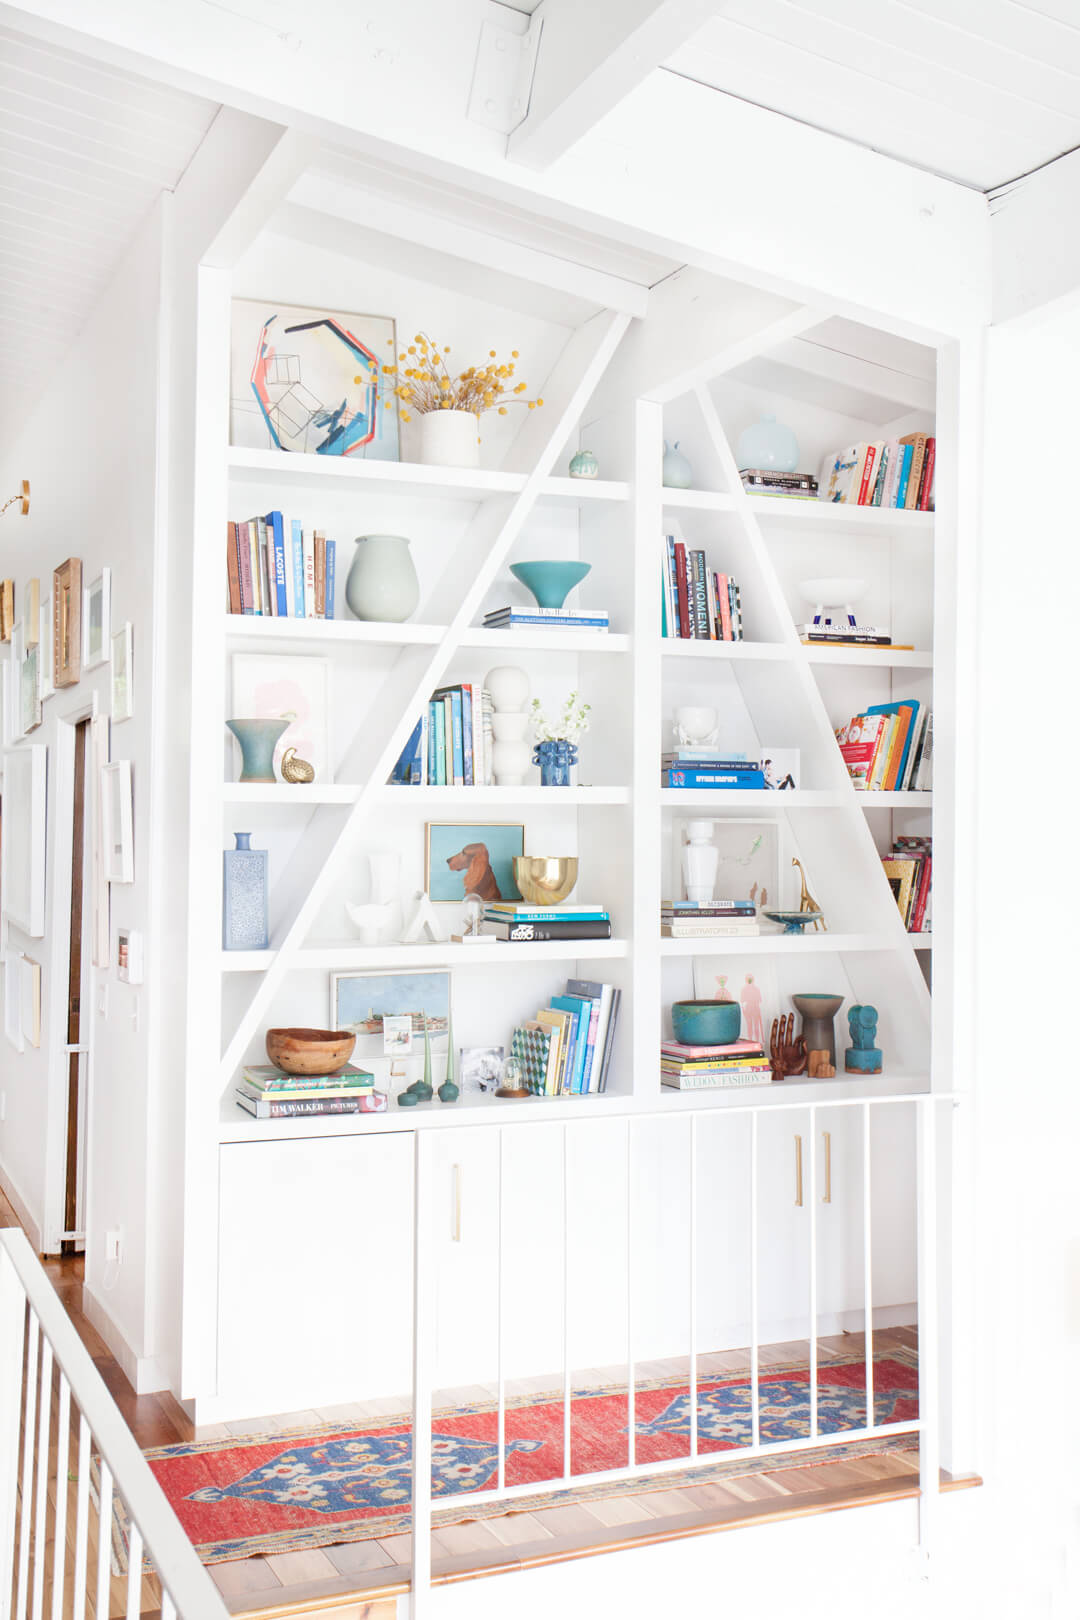 Emily_Hendersons_Home_Bookcase_2